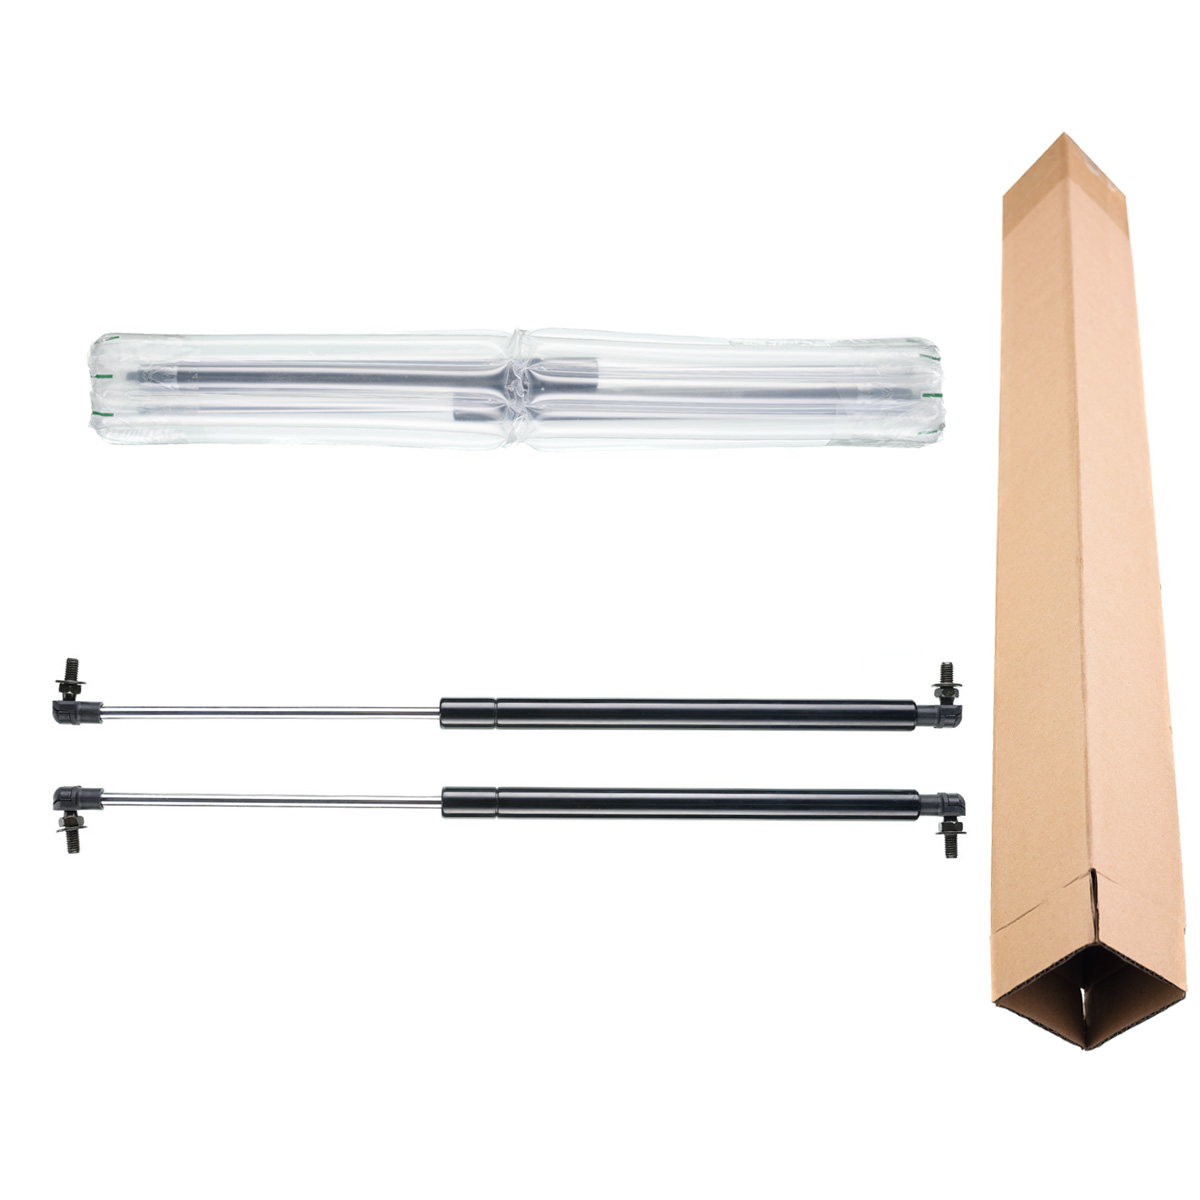 Chevy Equinox Hatch Struts: 2x Rear Hatch Tailgate Lift Supports Gas Struts For Honda